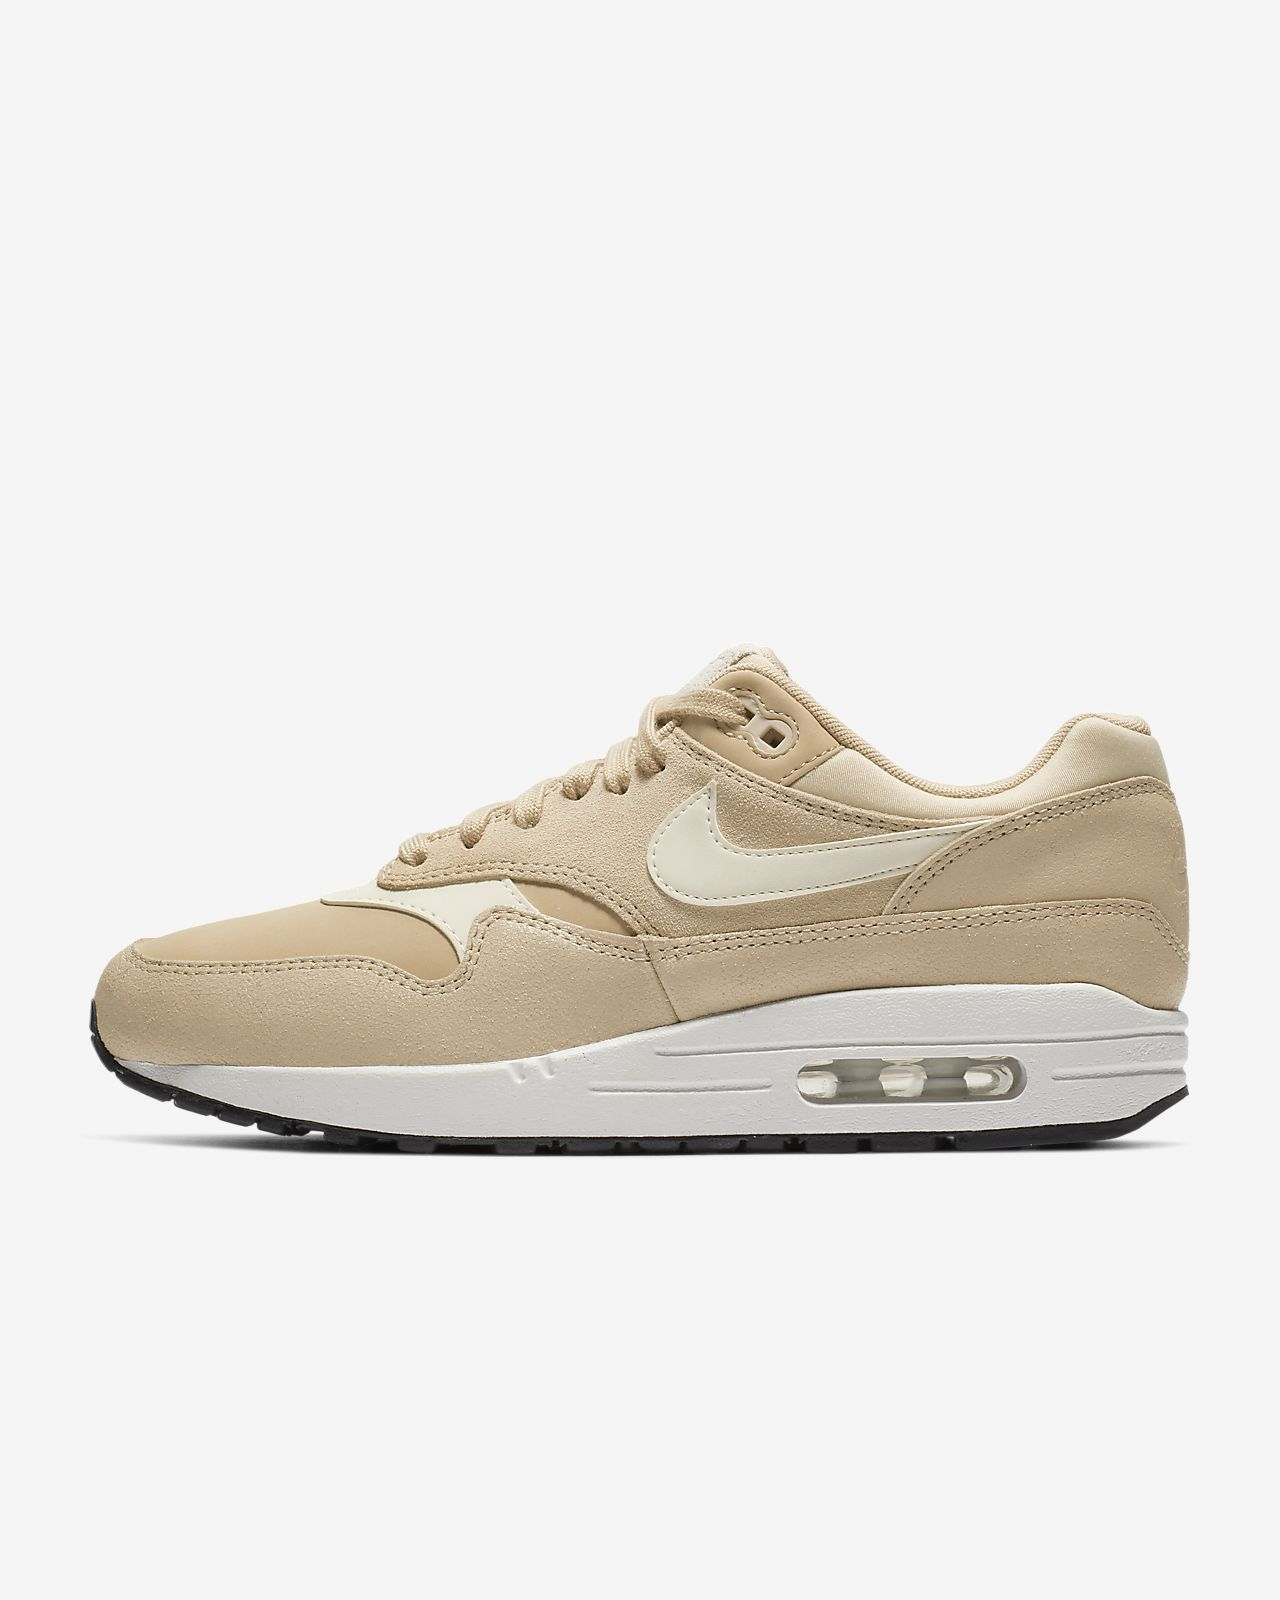 official photos 54c42 41135 Women s Shoe. Nike Air Max 1 Premium